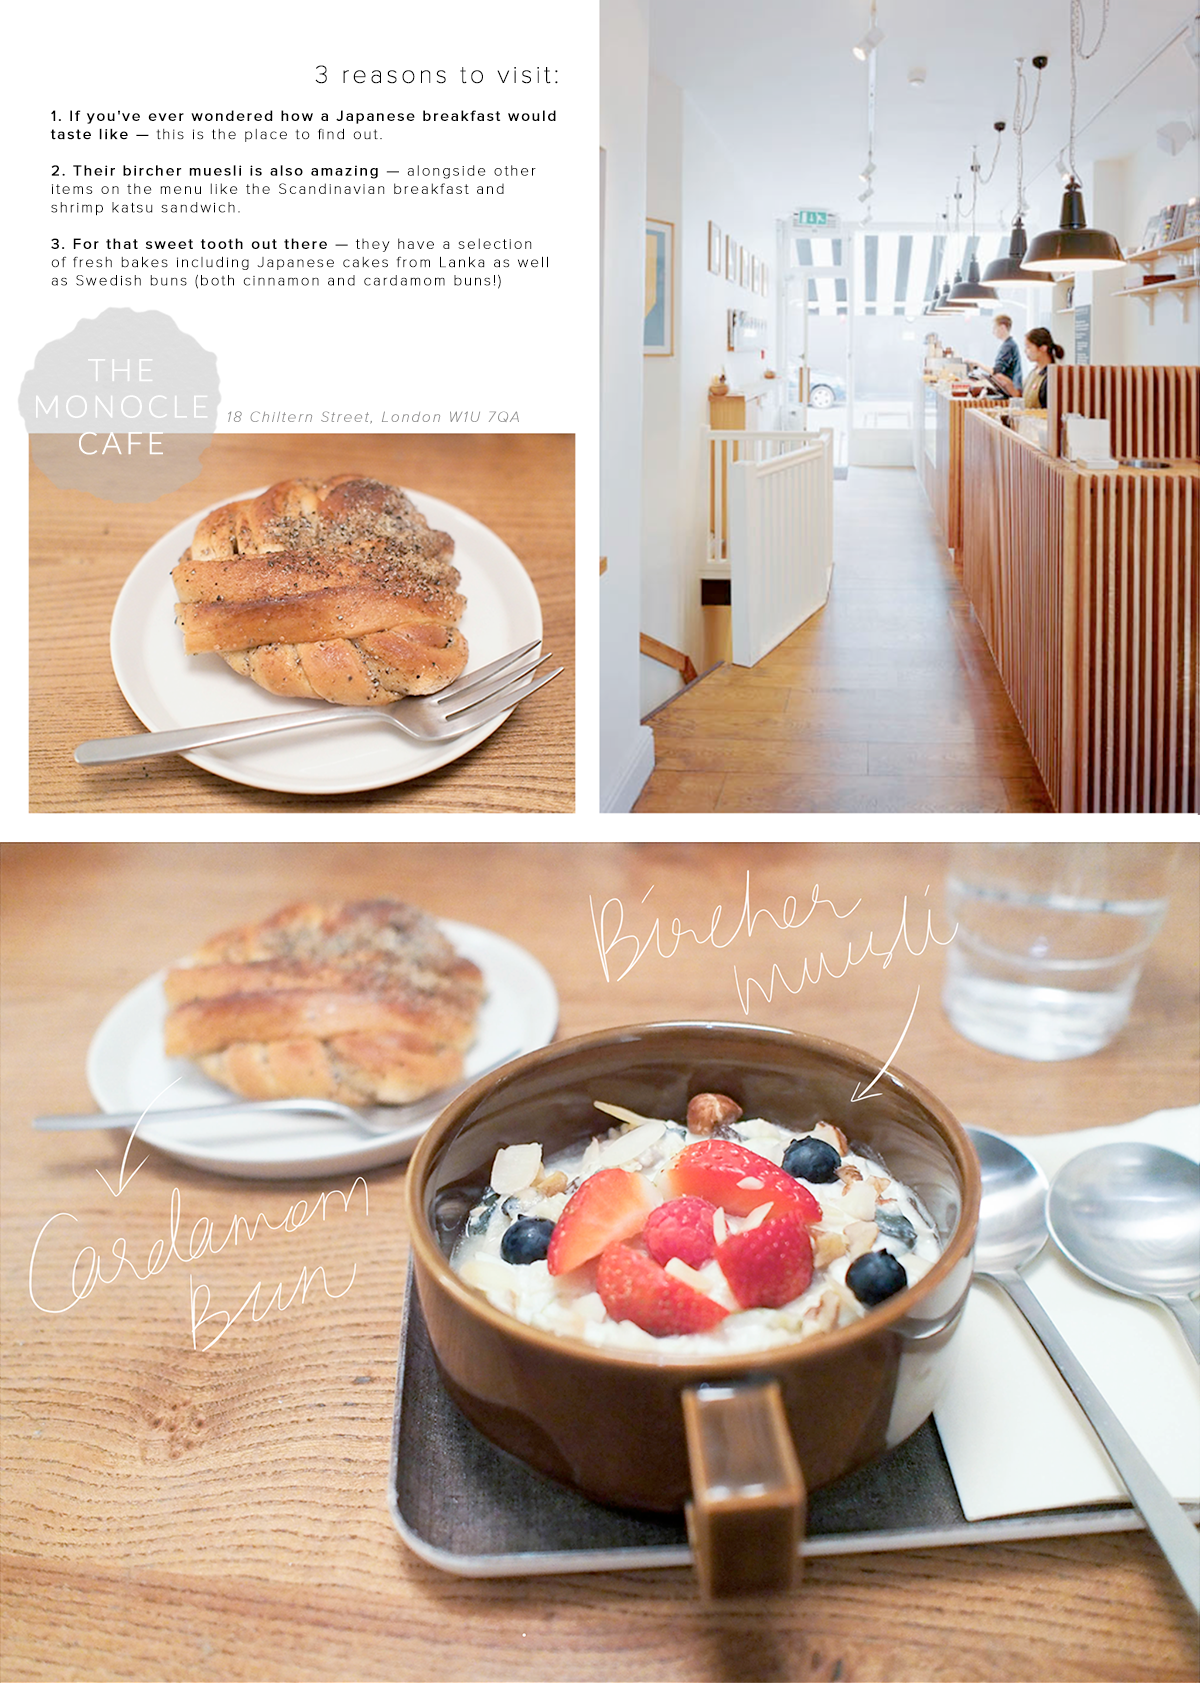 London cafe: MONOCLE  1. If you've ever wondered how a Japanese breakfast would  taste like — this is the place to find out.   2. Their bircher muesli is also amazing — alongside other  items on the menu like the Scandinavian breakfast and  shrimp katsu sandwich.  3. For that sweet tooth out there — they have a selection  of fresh bakes including Japanese cakes from Lanka as well as Swedish buns (both cinnamon and cardamom buns!)